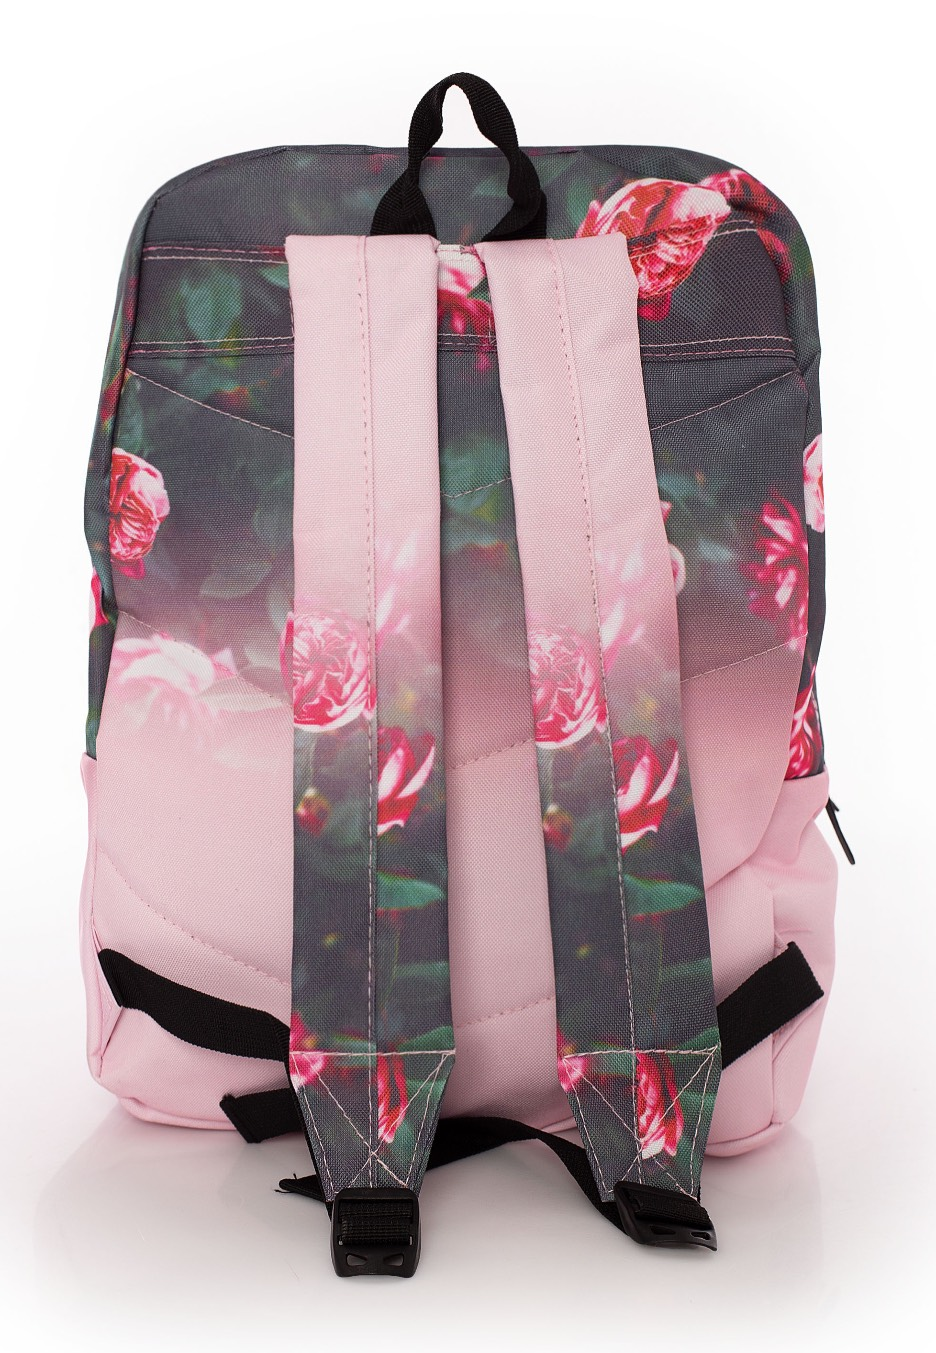 100d9b9782 Hot Tuna Pink And Black Backpack- Fenix Toulouse Handball